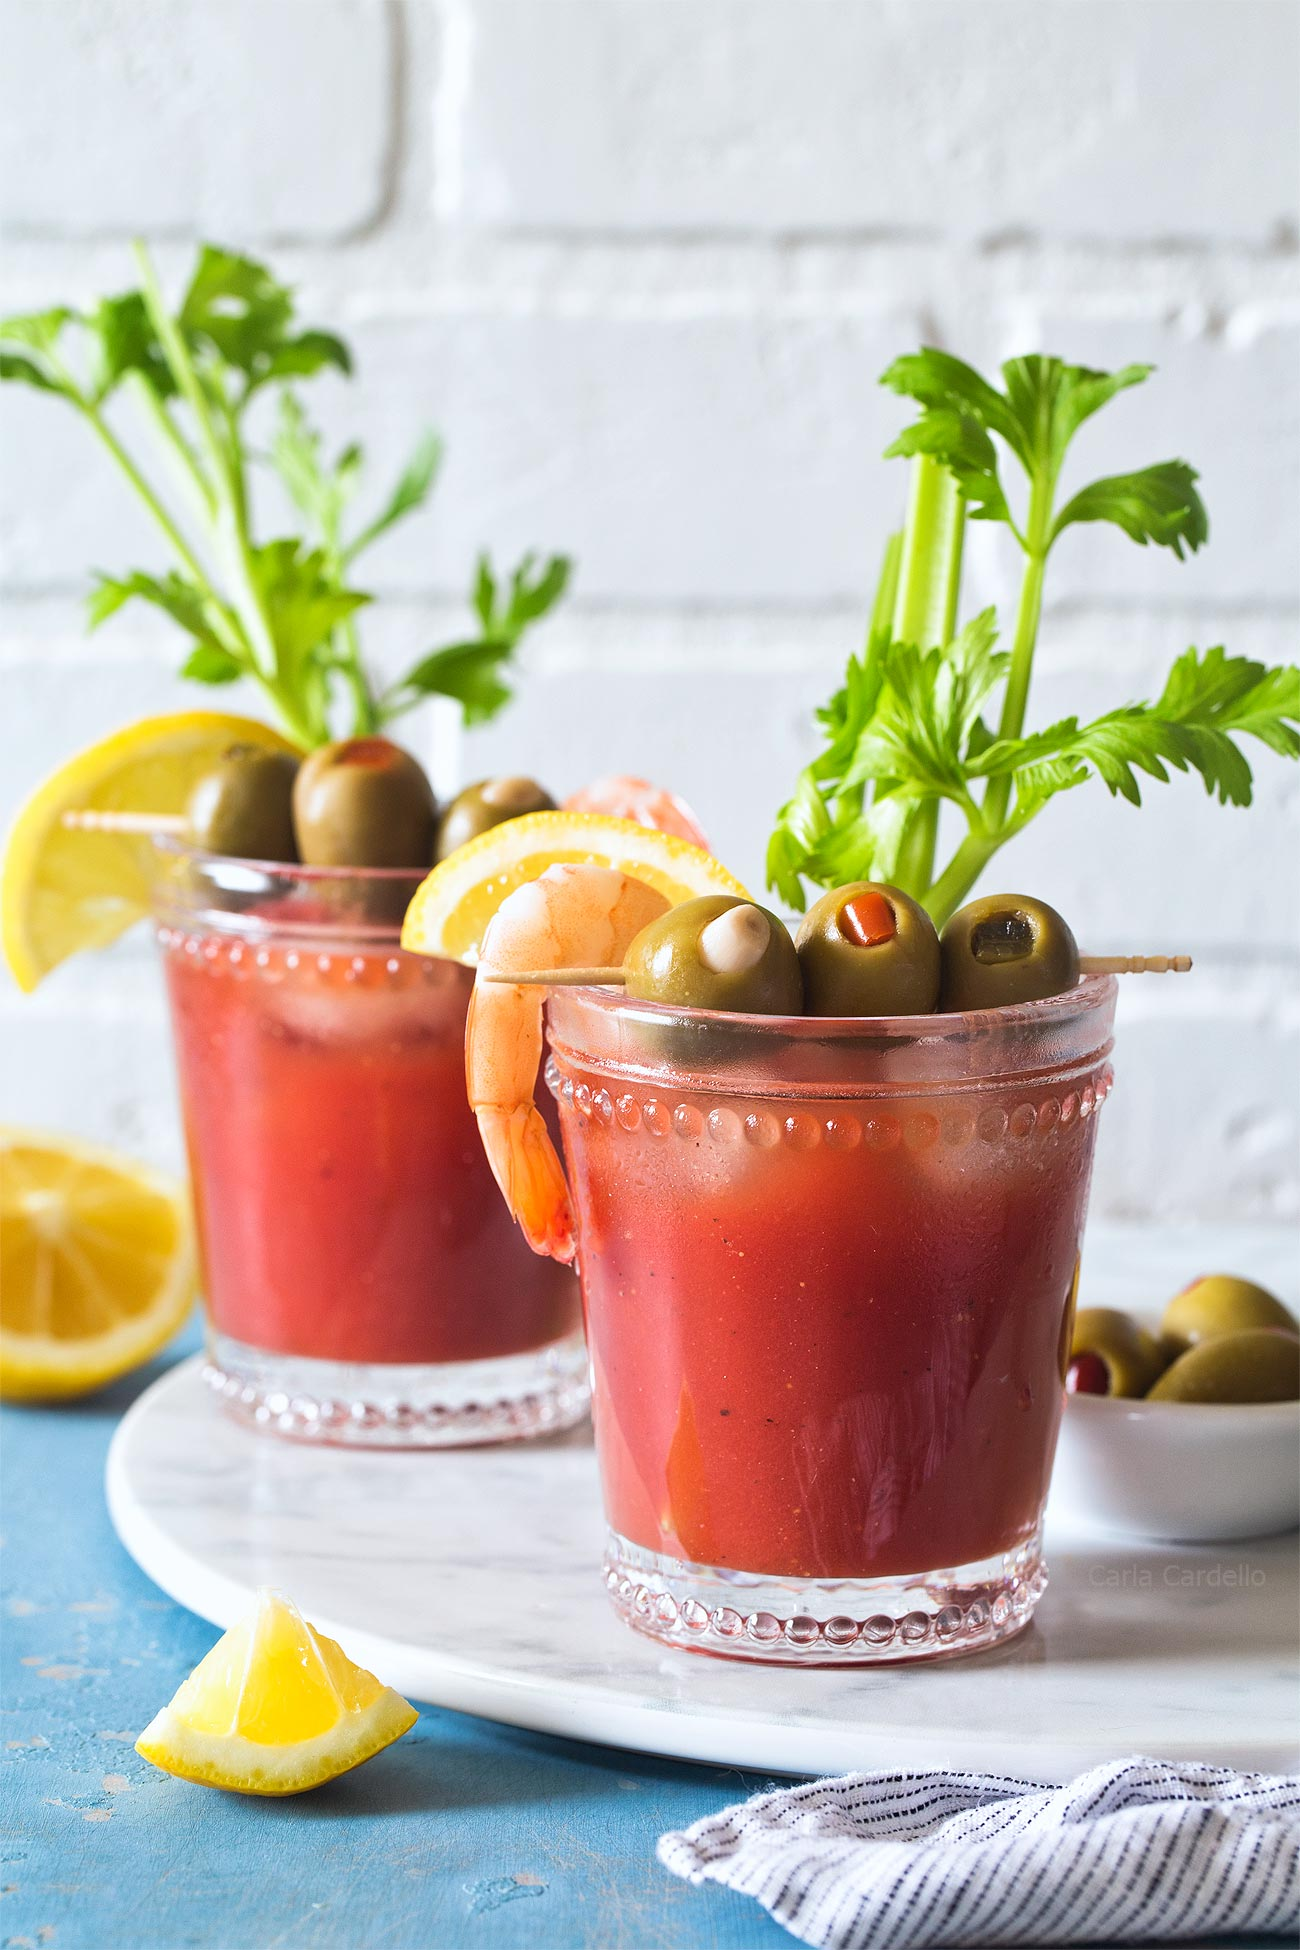 Small Batch Bloody Mary recipe made from scratch with tomato juice isn't like any other you've had, thanks to one secret ingredient.